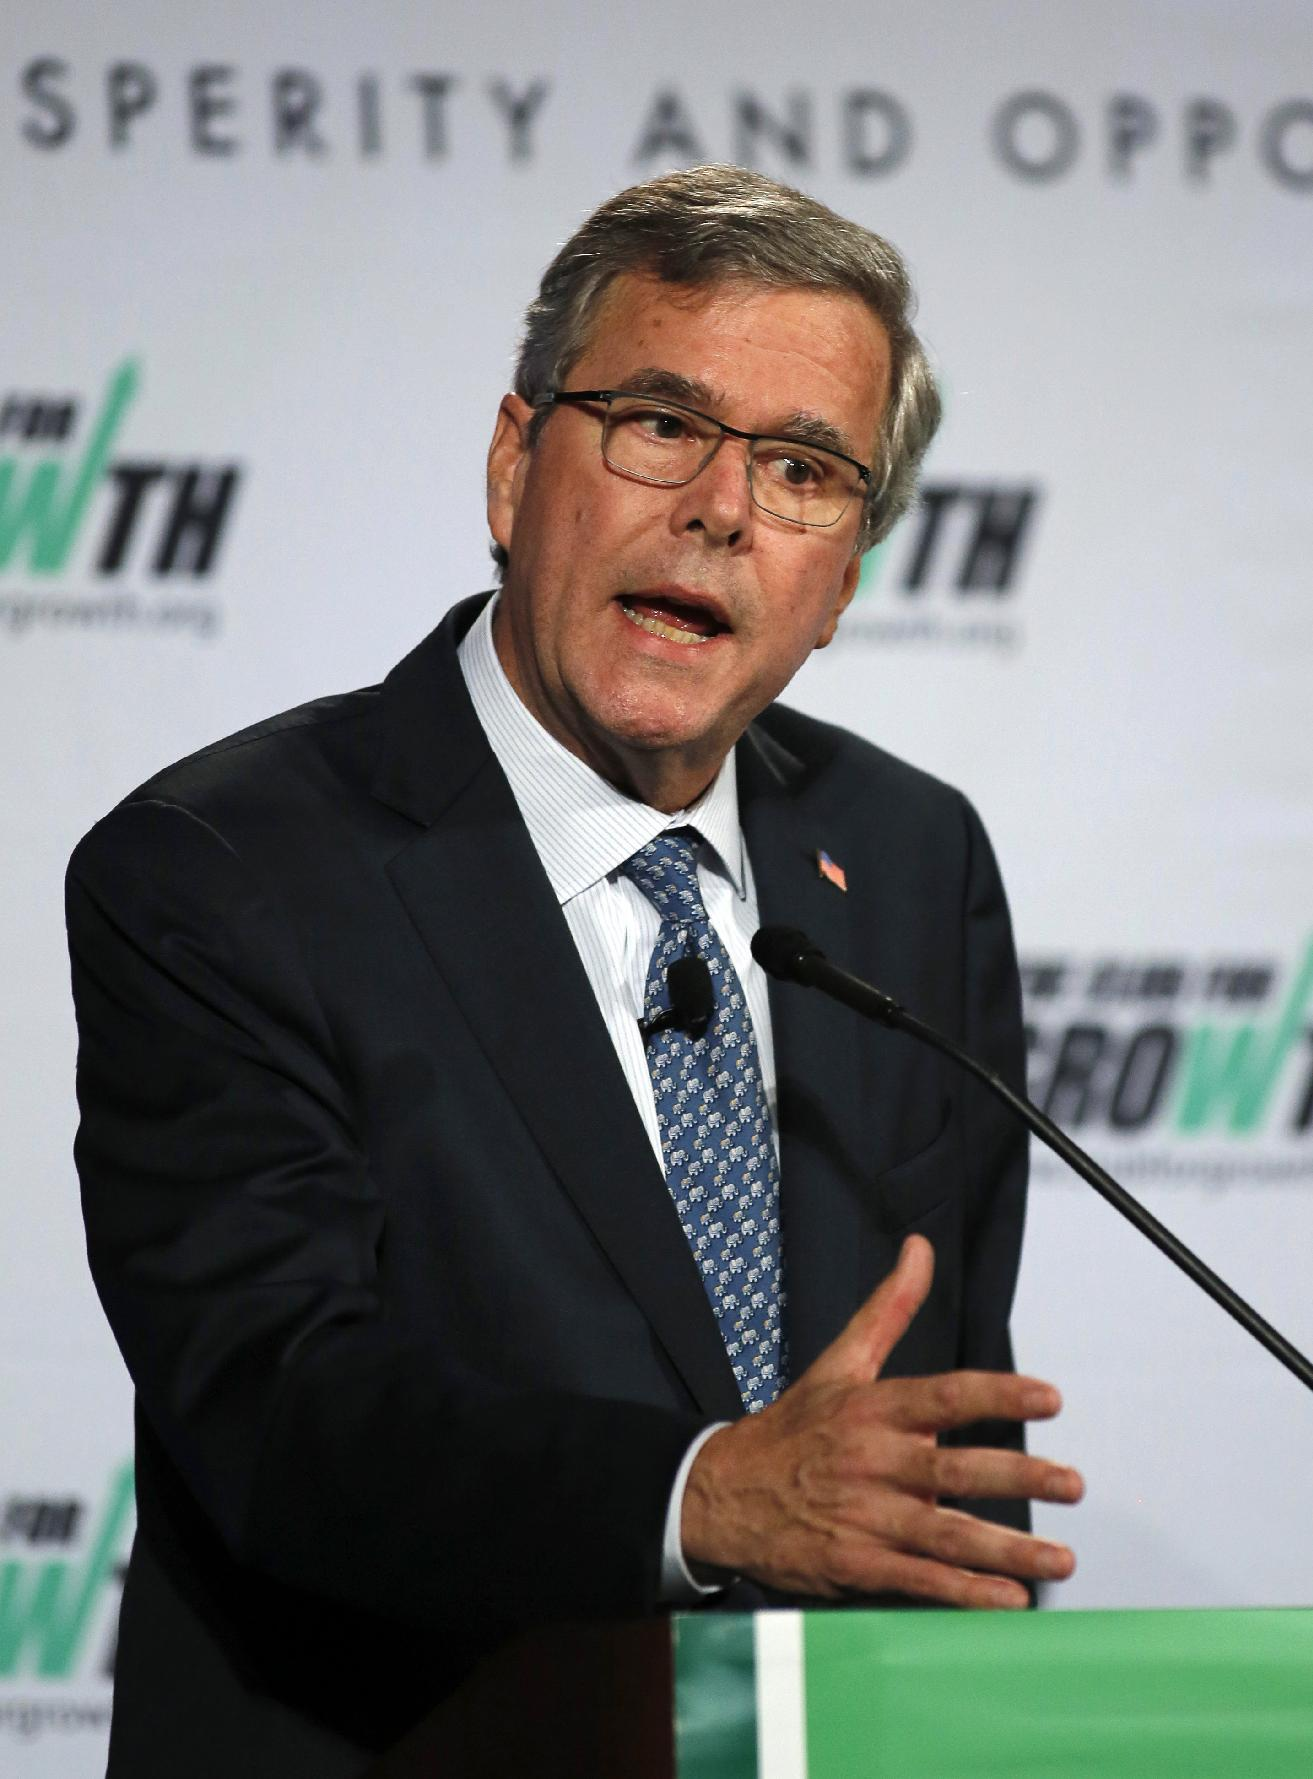 Bush: I'm a conservative, with a record of fiscal prudence